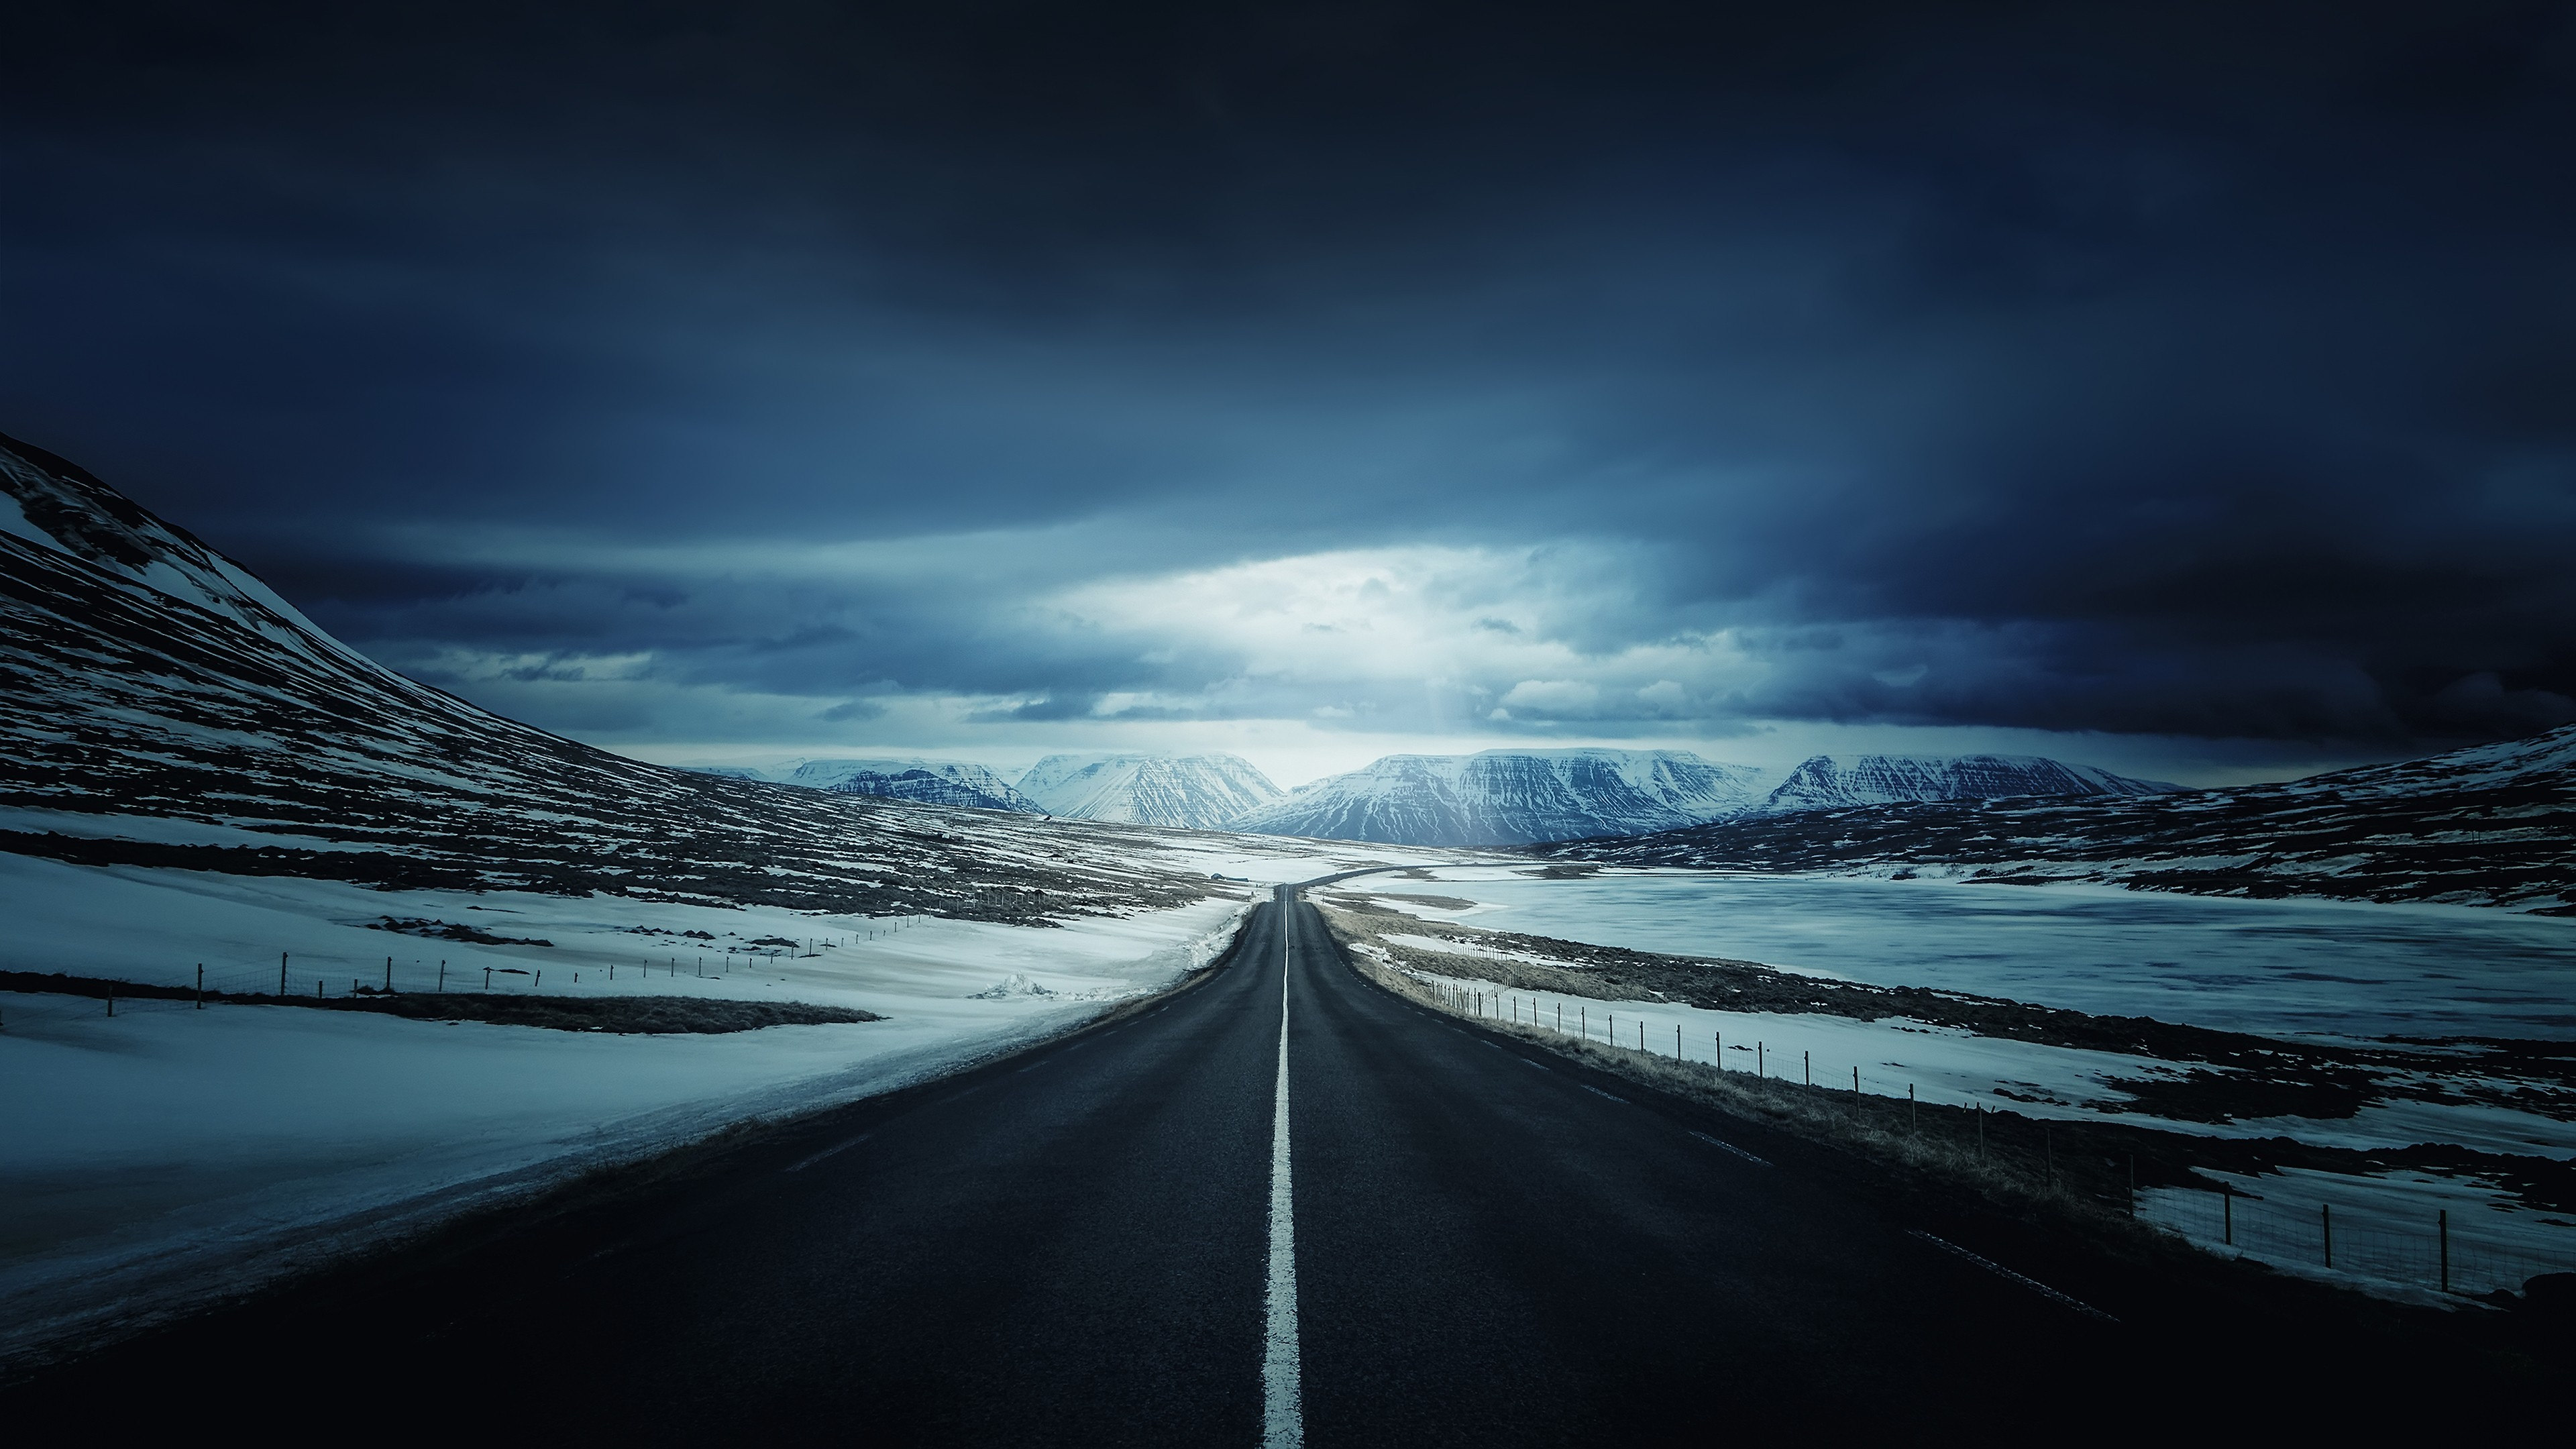 4k Hd Wallapaper: Road Iceland Clouds Highway Mountains Landscape 4k, HD